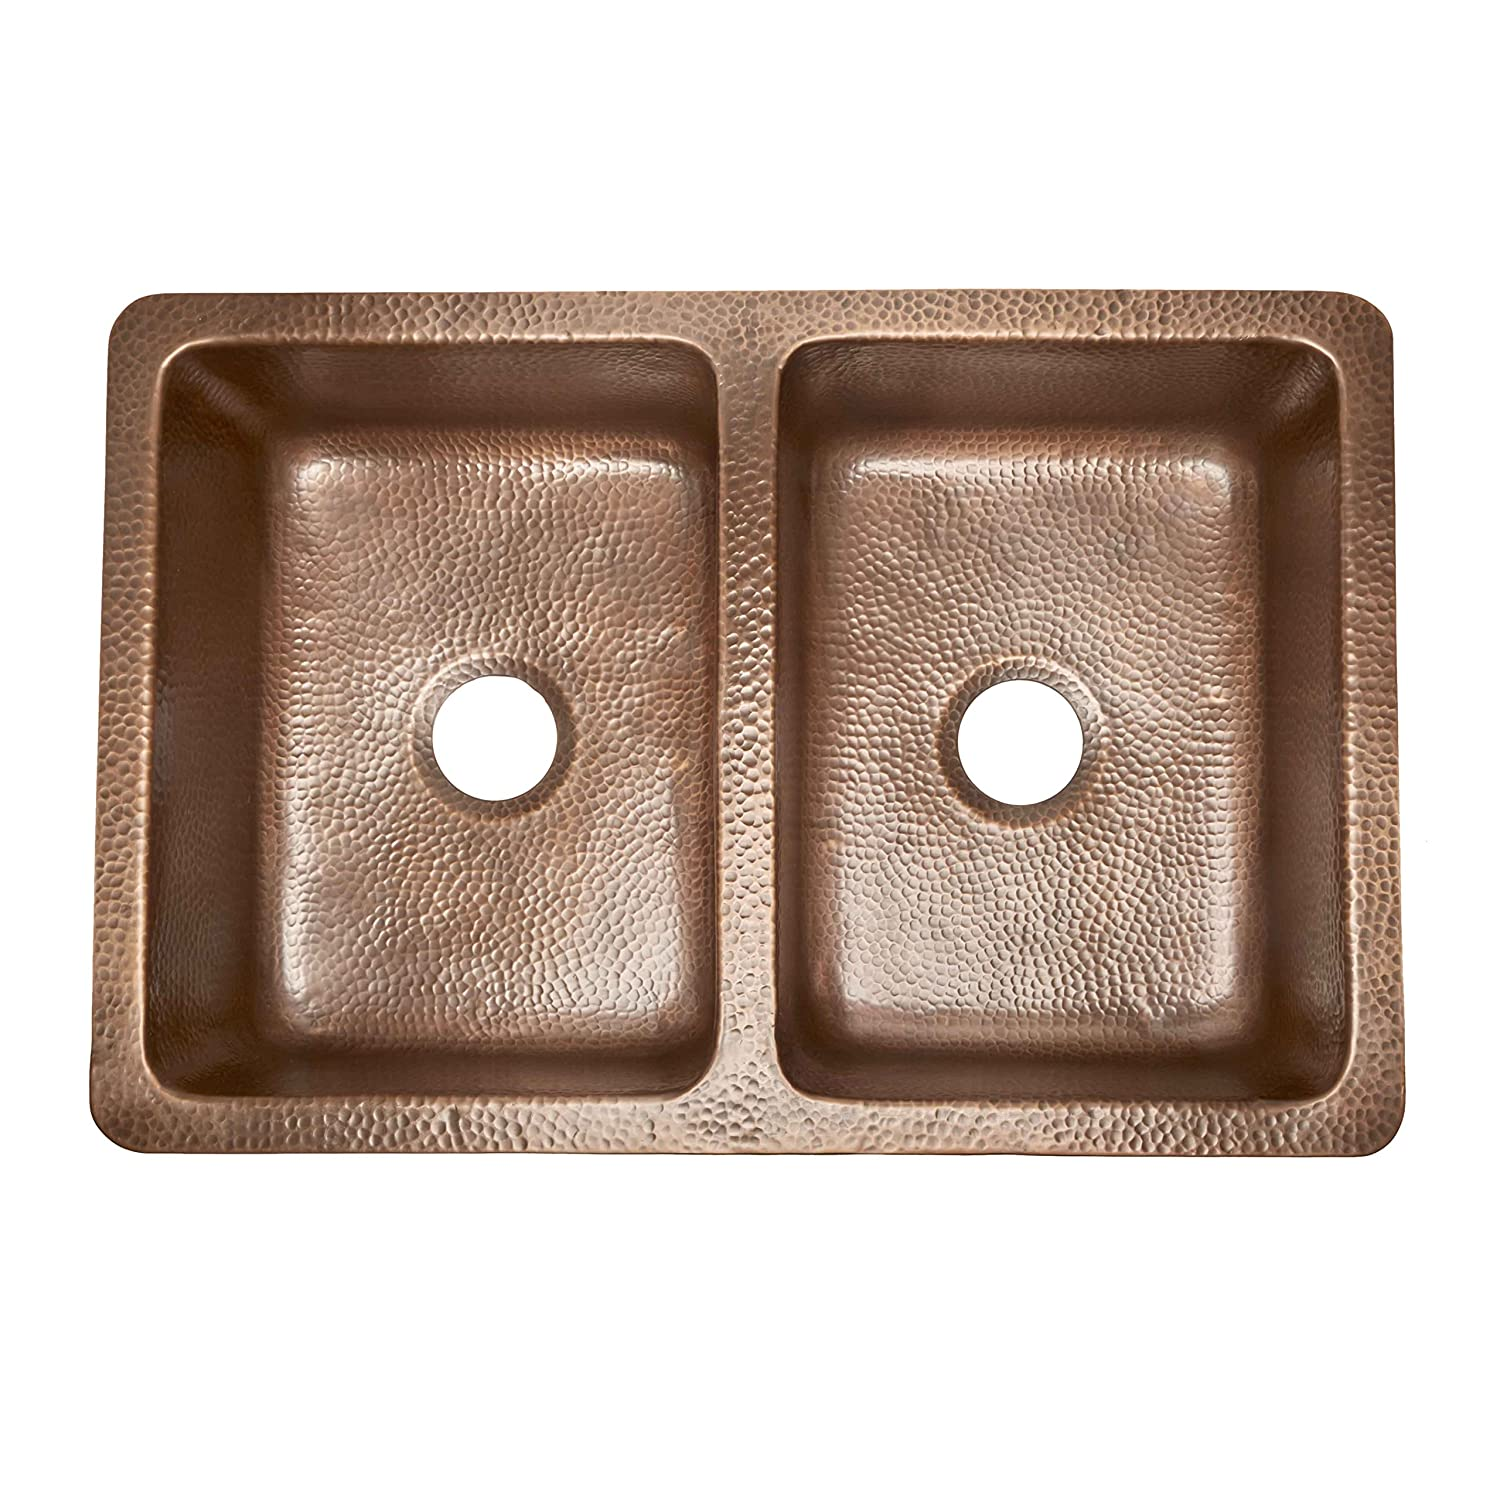 rockwell farmhouse 33 inches - Copper Kitchen Sinks Reviews